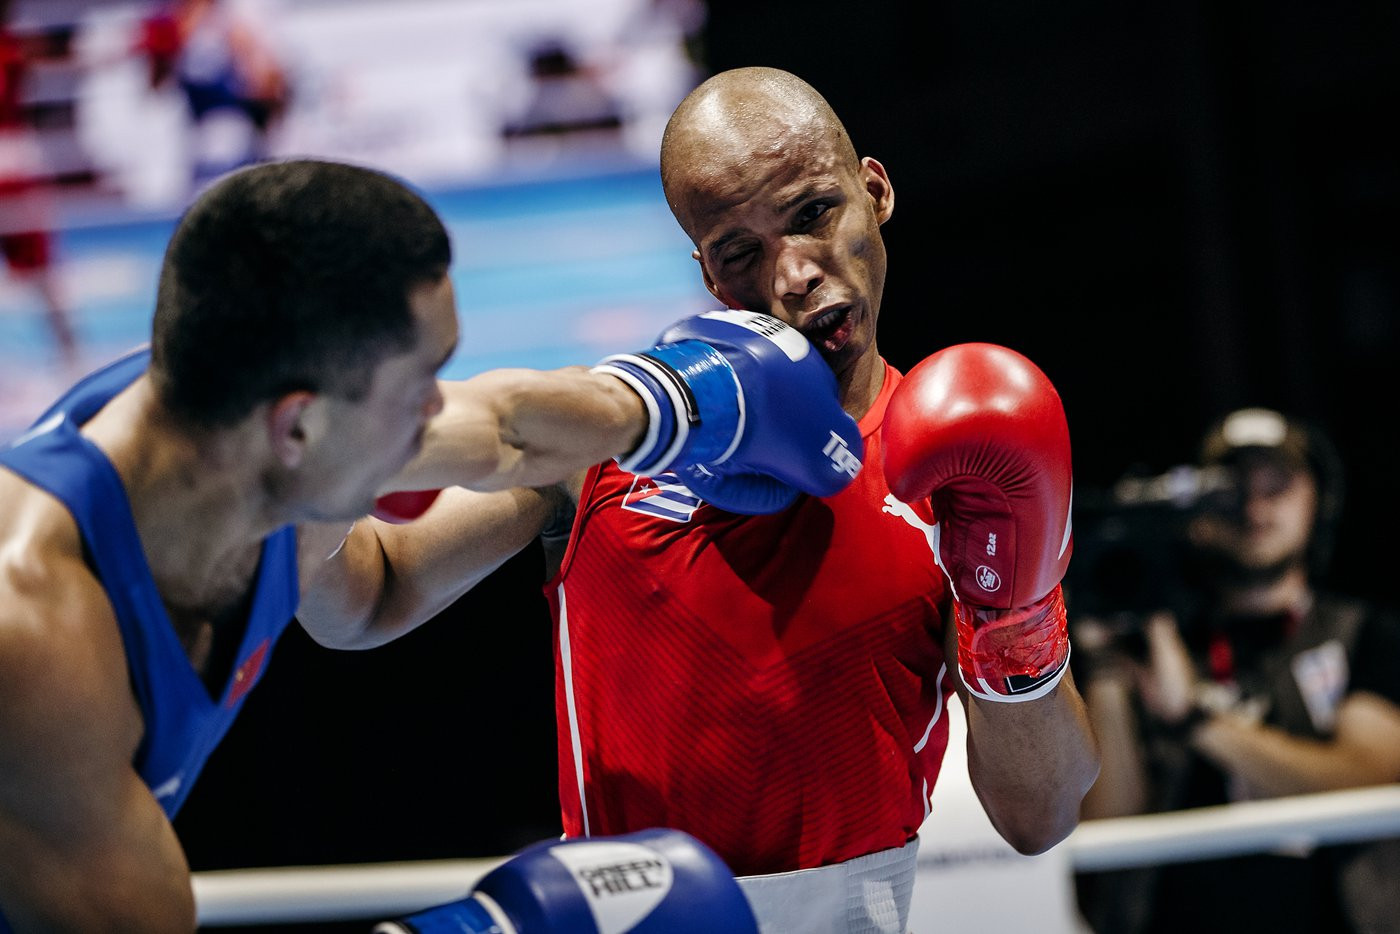 Welterweight top seed Roniel Iglesias of Cuba recorded a unanimous victory at the AIBA World Championships ©Yekaterinburg 2019